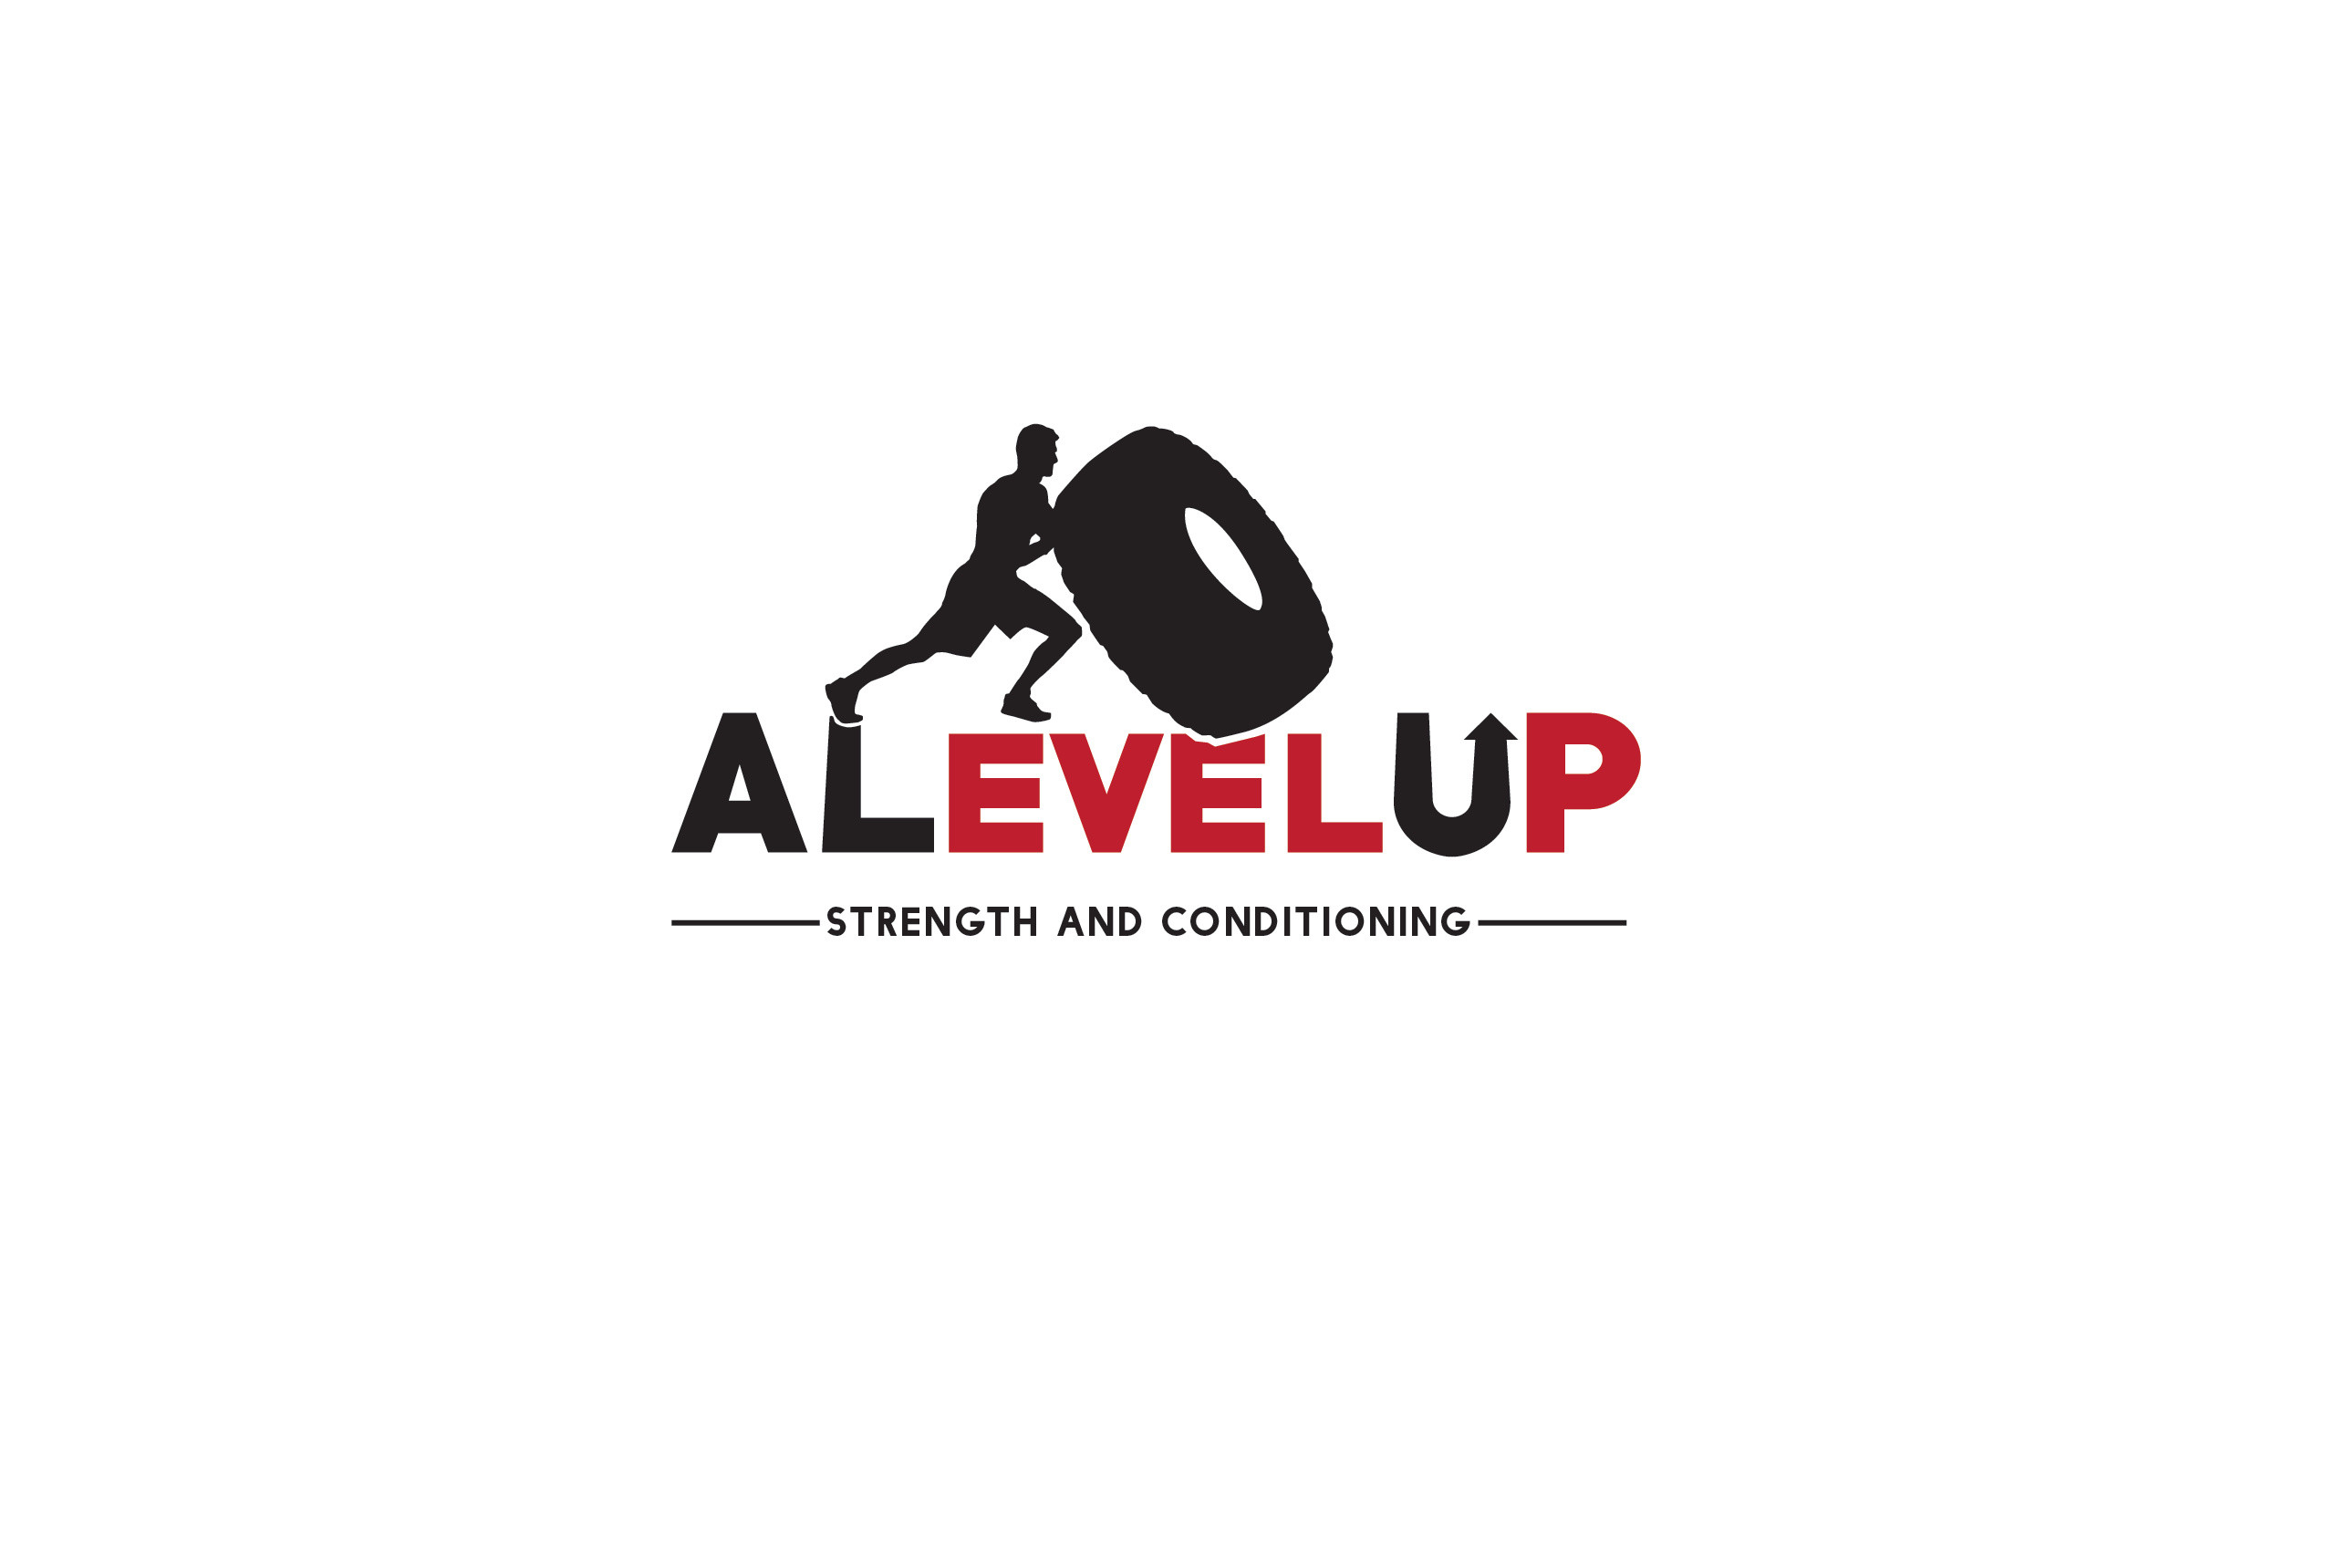 ALUP:Strength and Conditioning